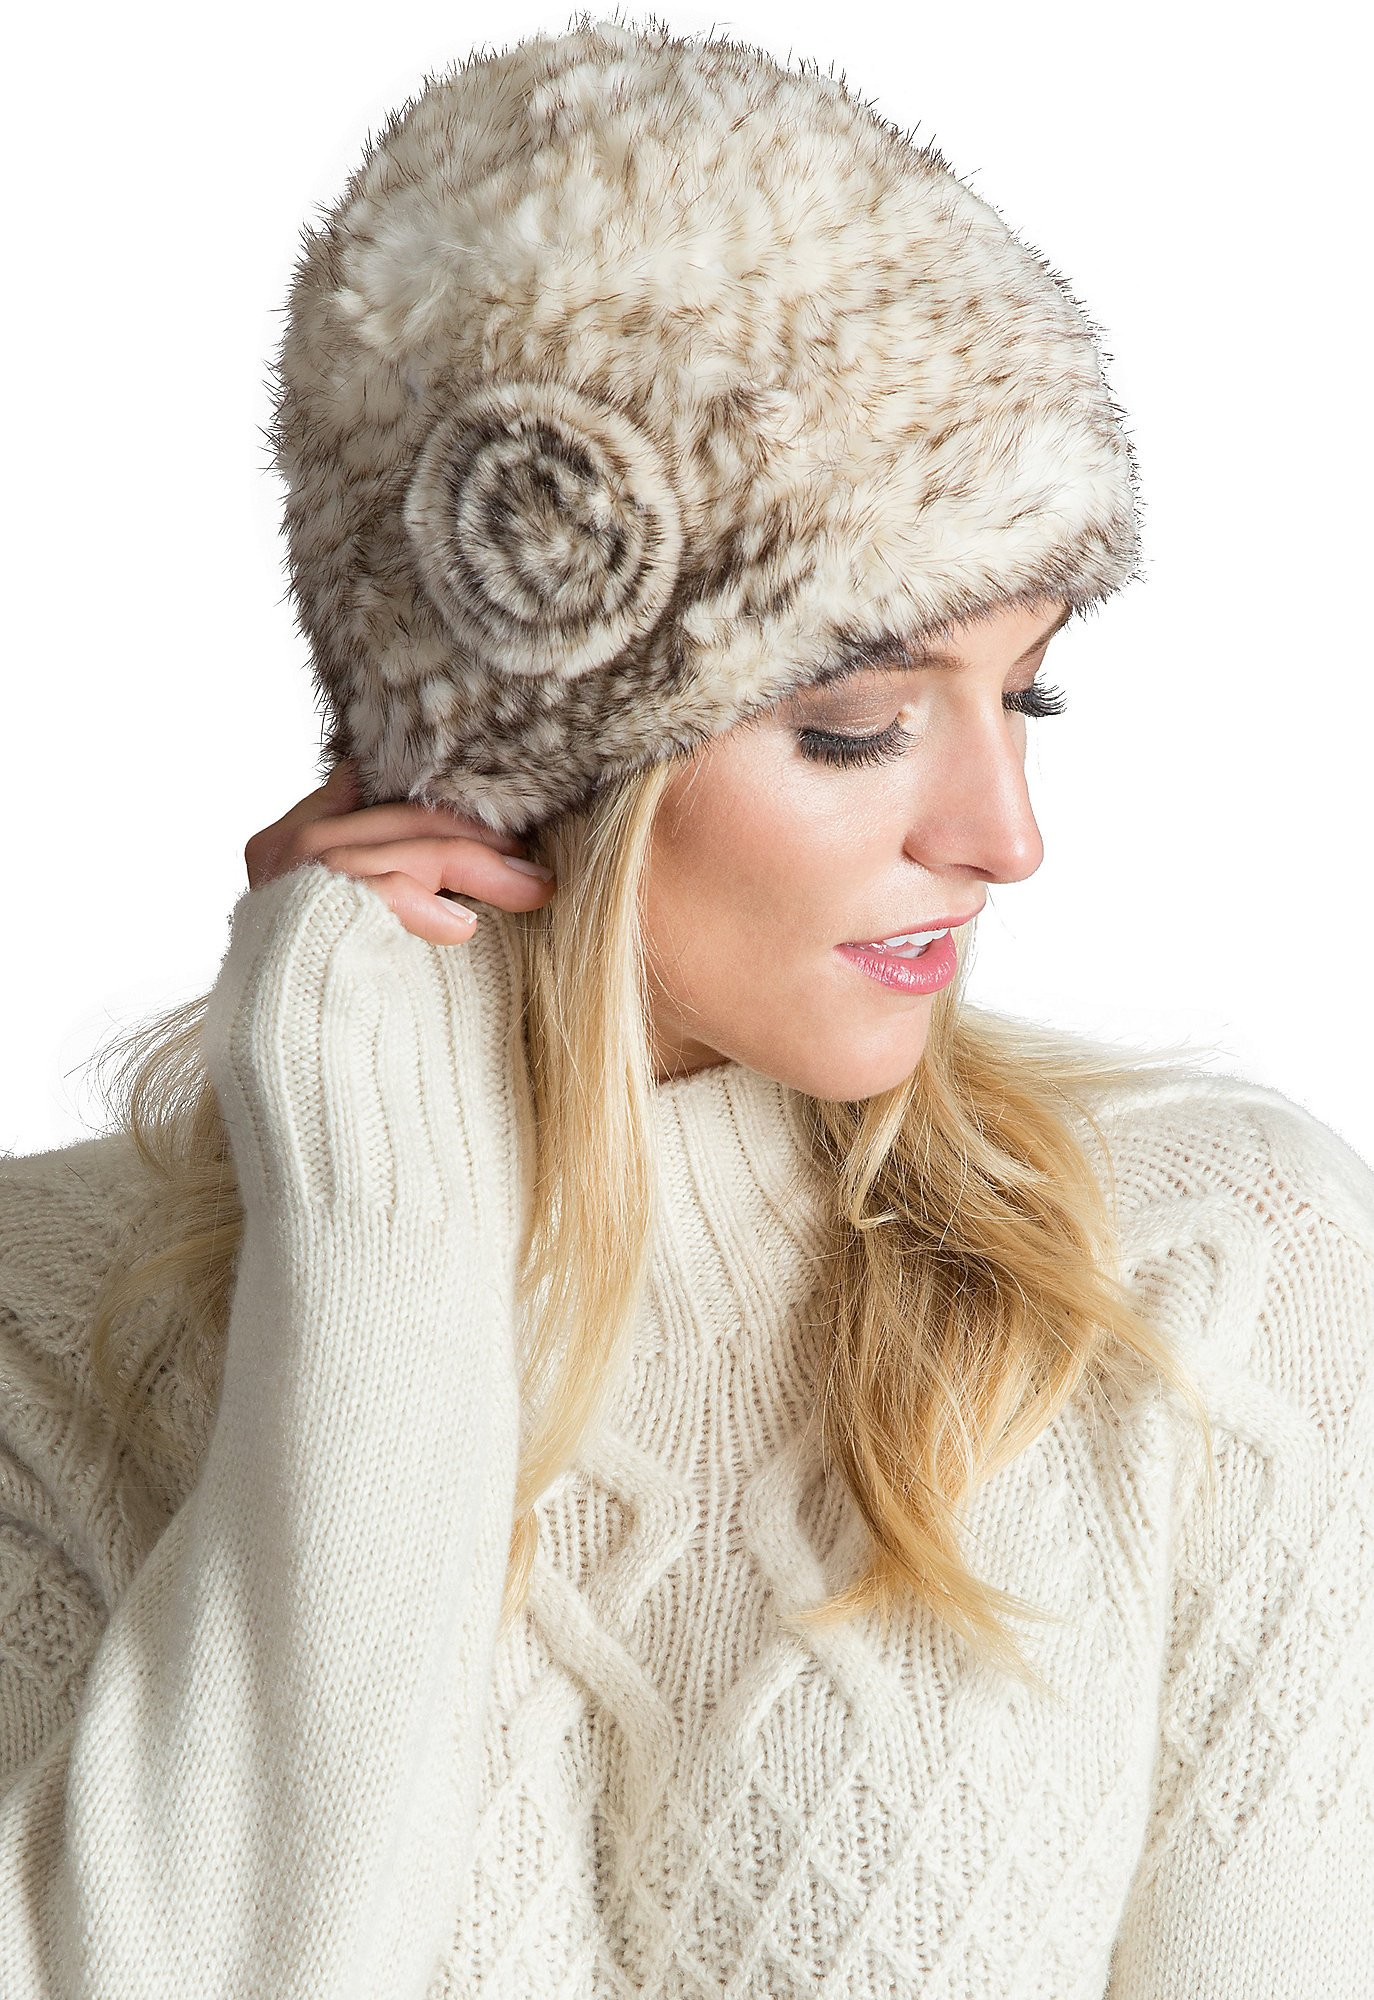 Overland Sheepskin Co. Knitted Mink Fur Beanie Hat With Fur Flower, Bleached Brown, Size 1 Size